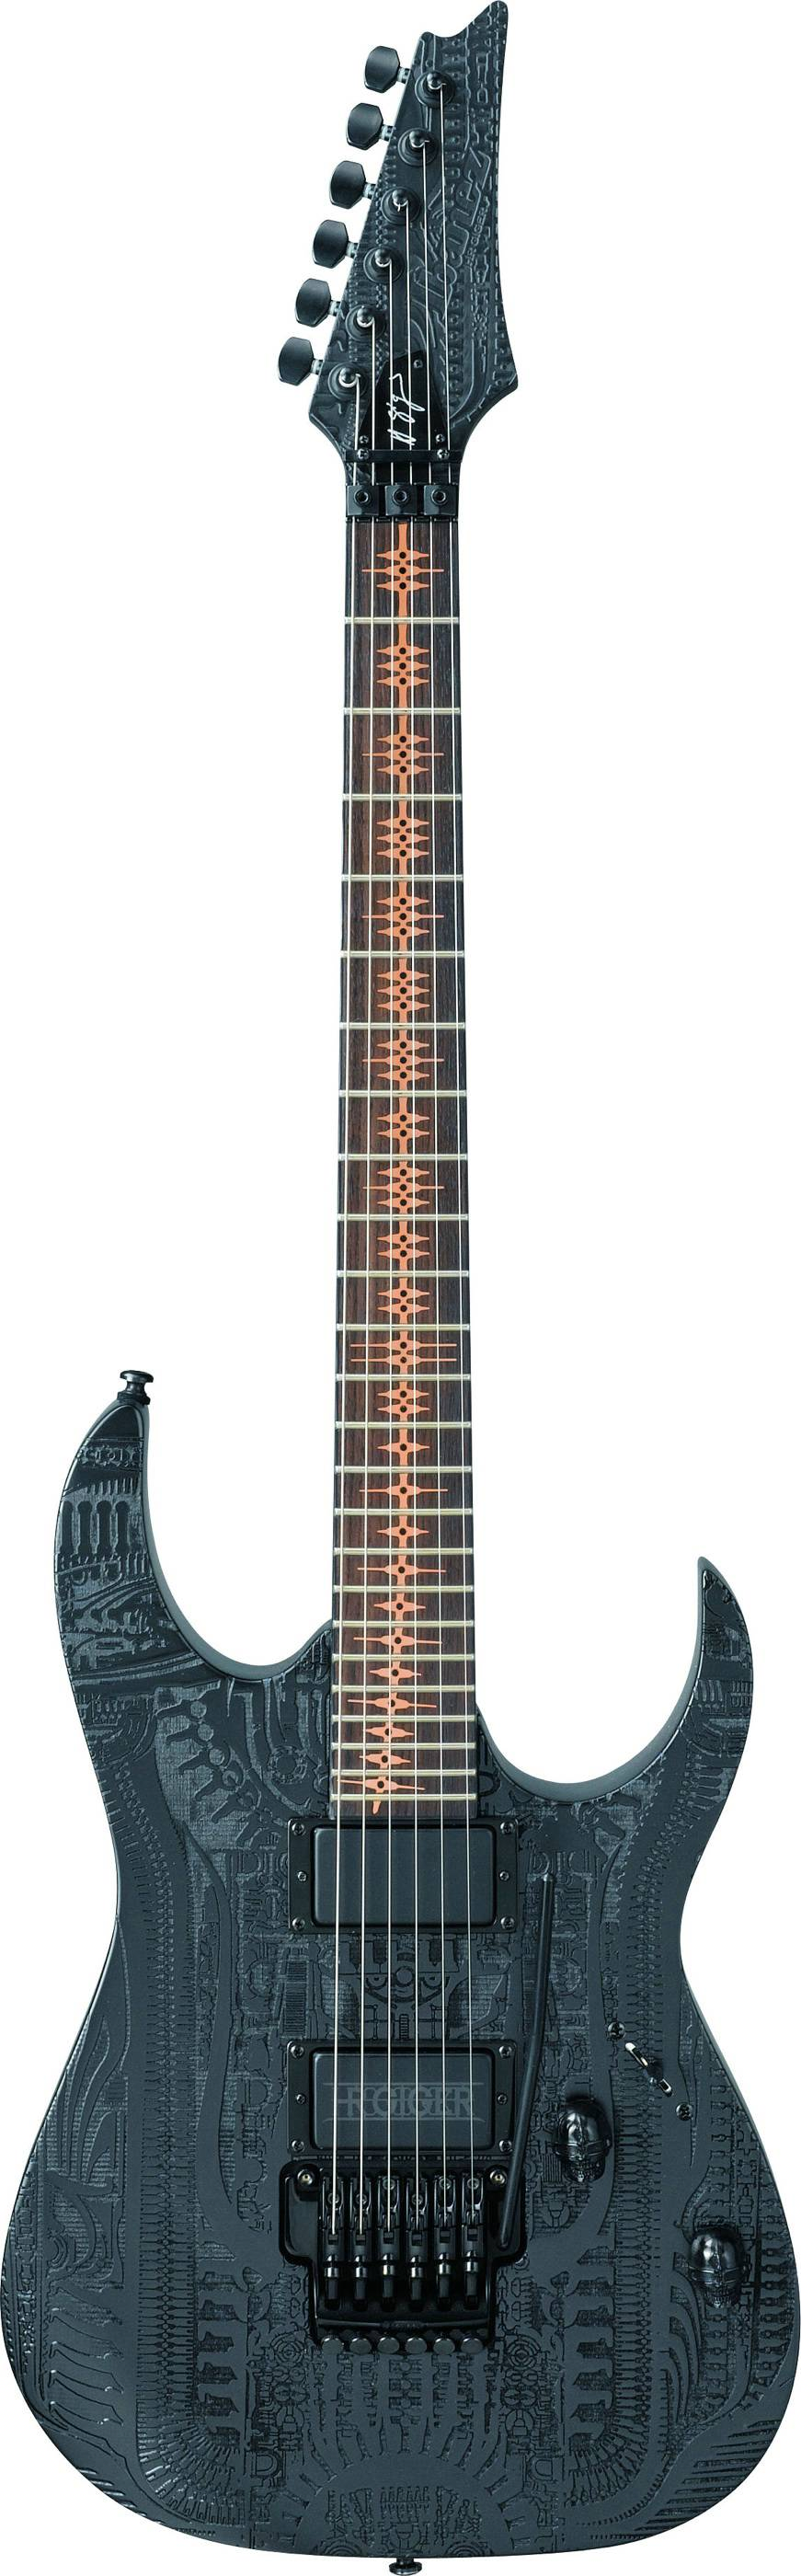 ibanez 8 string guitar mockups guitars for my boys pinterest